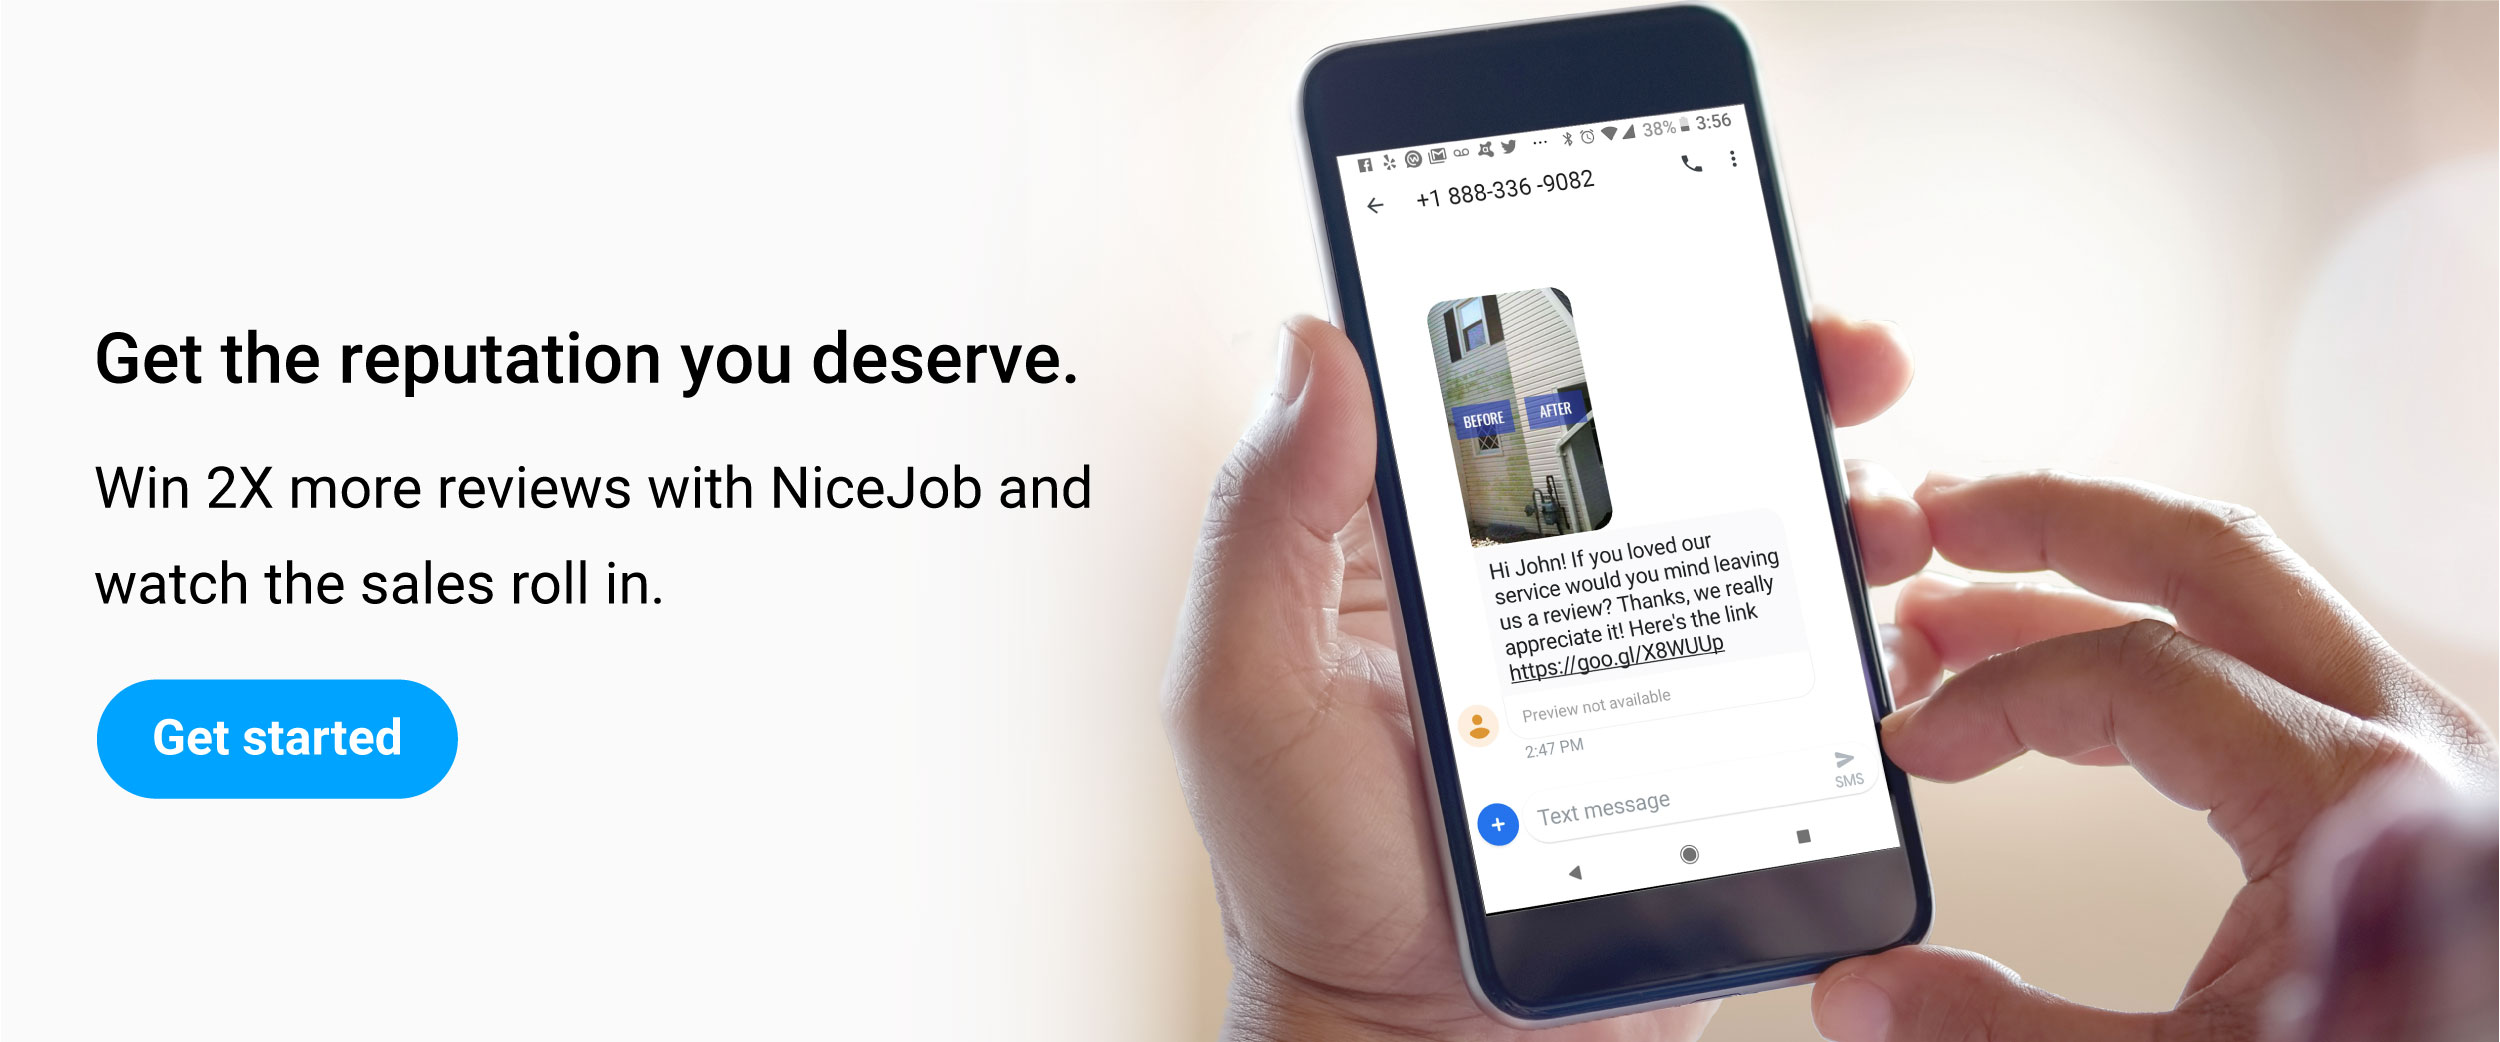 Ad for NiceJob's Review product